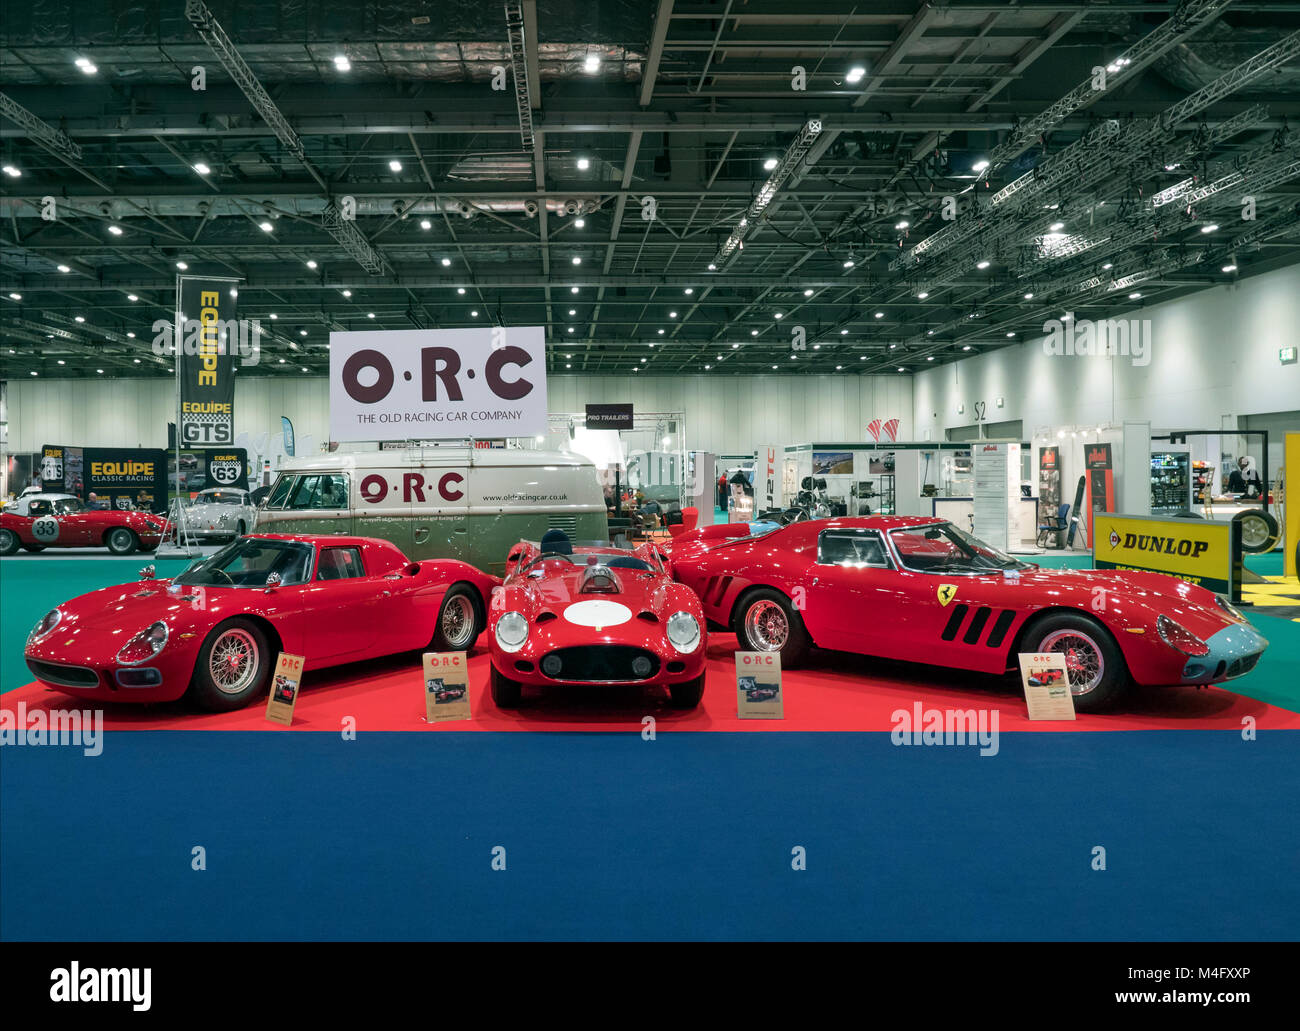 Old Racing Car Company Stock Photos & Old Racing Car Company Stock ...